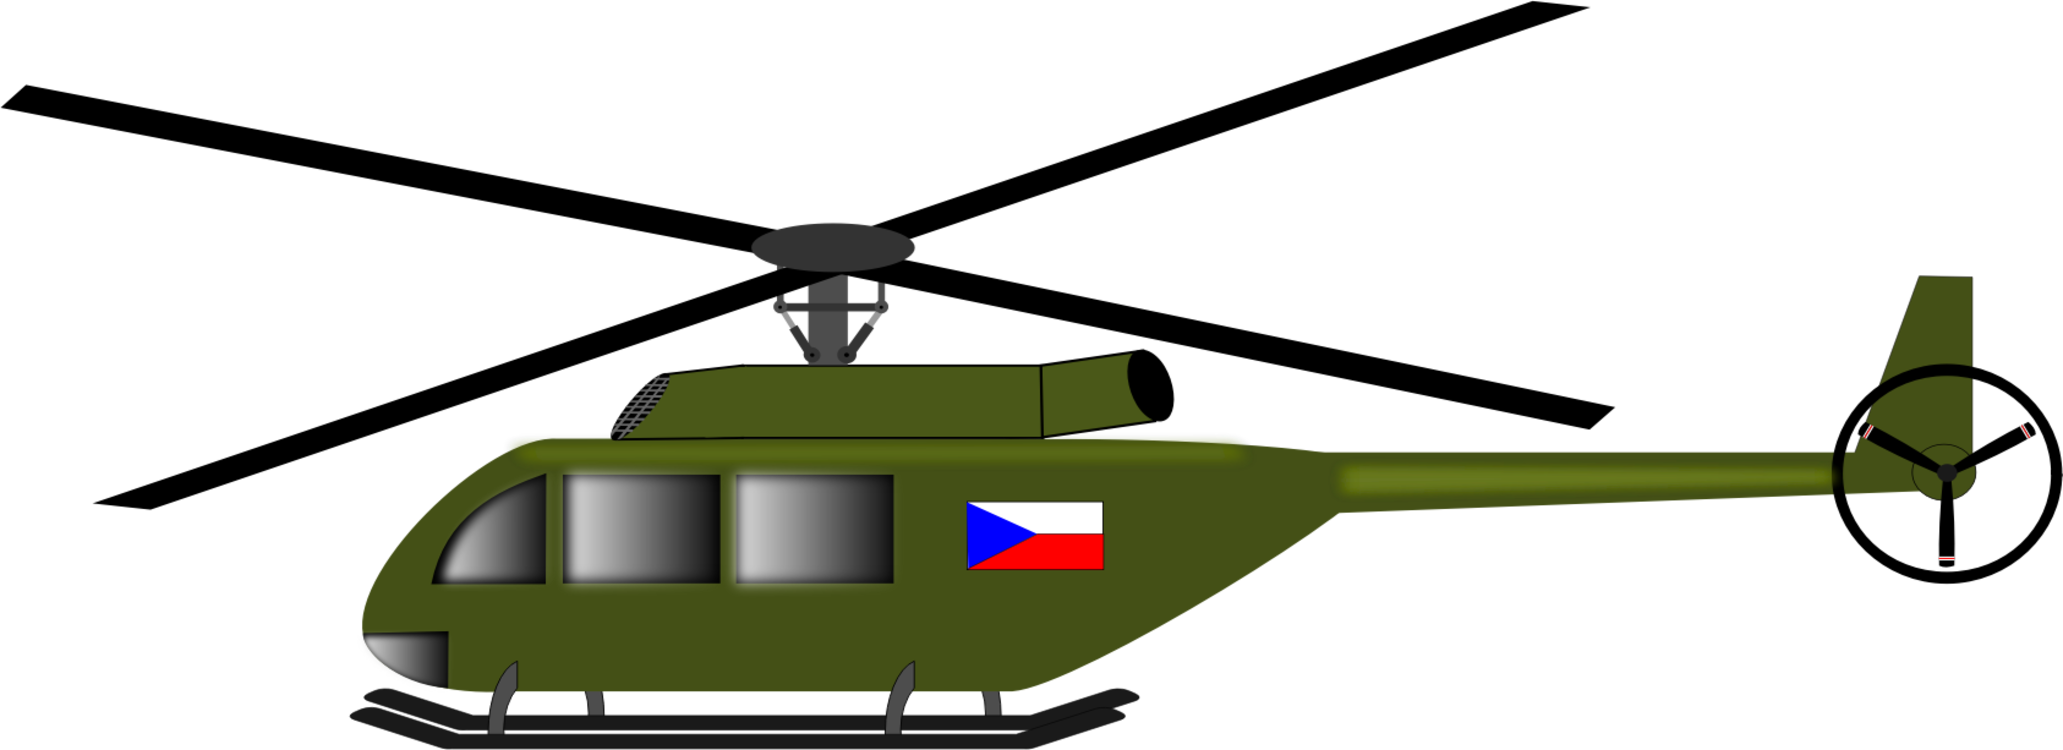 Helicopter clipart red helicopter. Military aircraft boeing ch